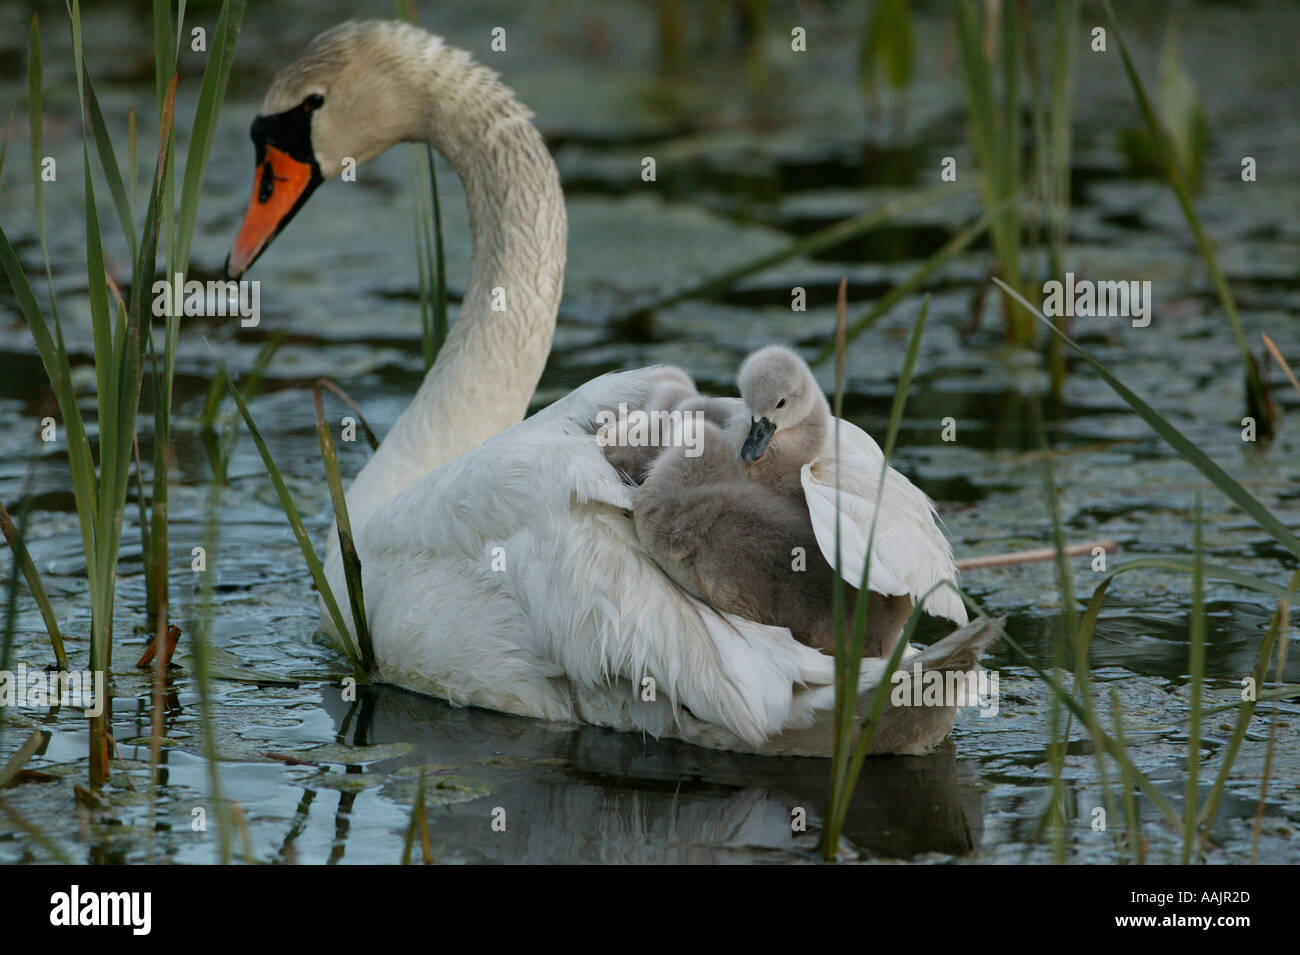 Mute swan family in the lake Vansjø, Våler kommune, Østfold fylke, Norway - Stock Image